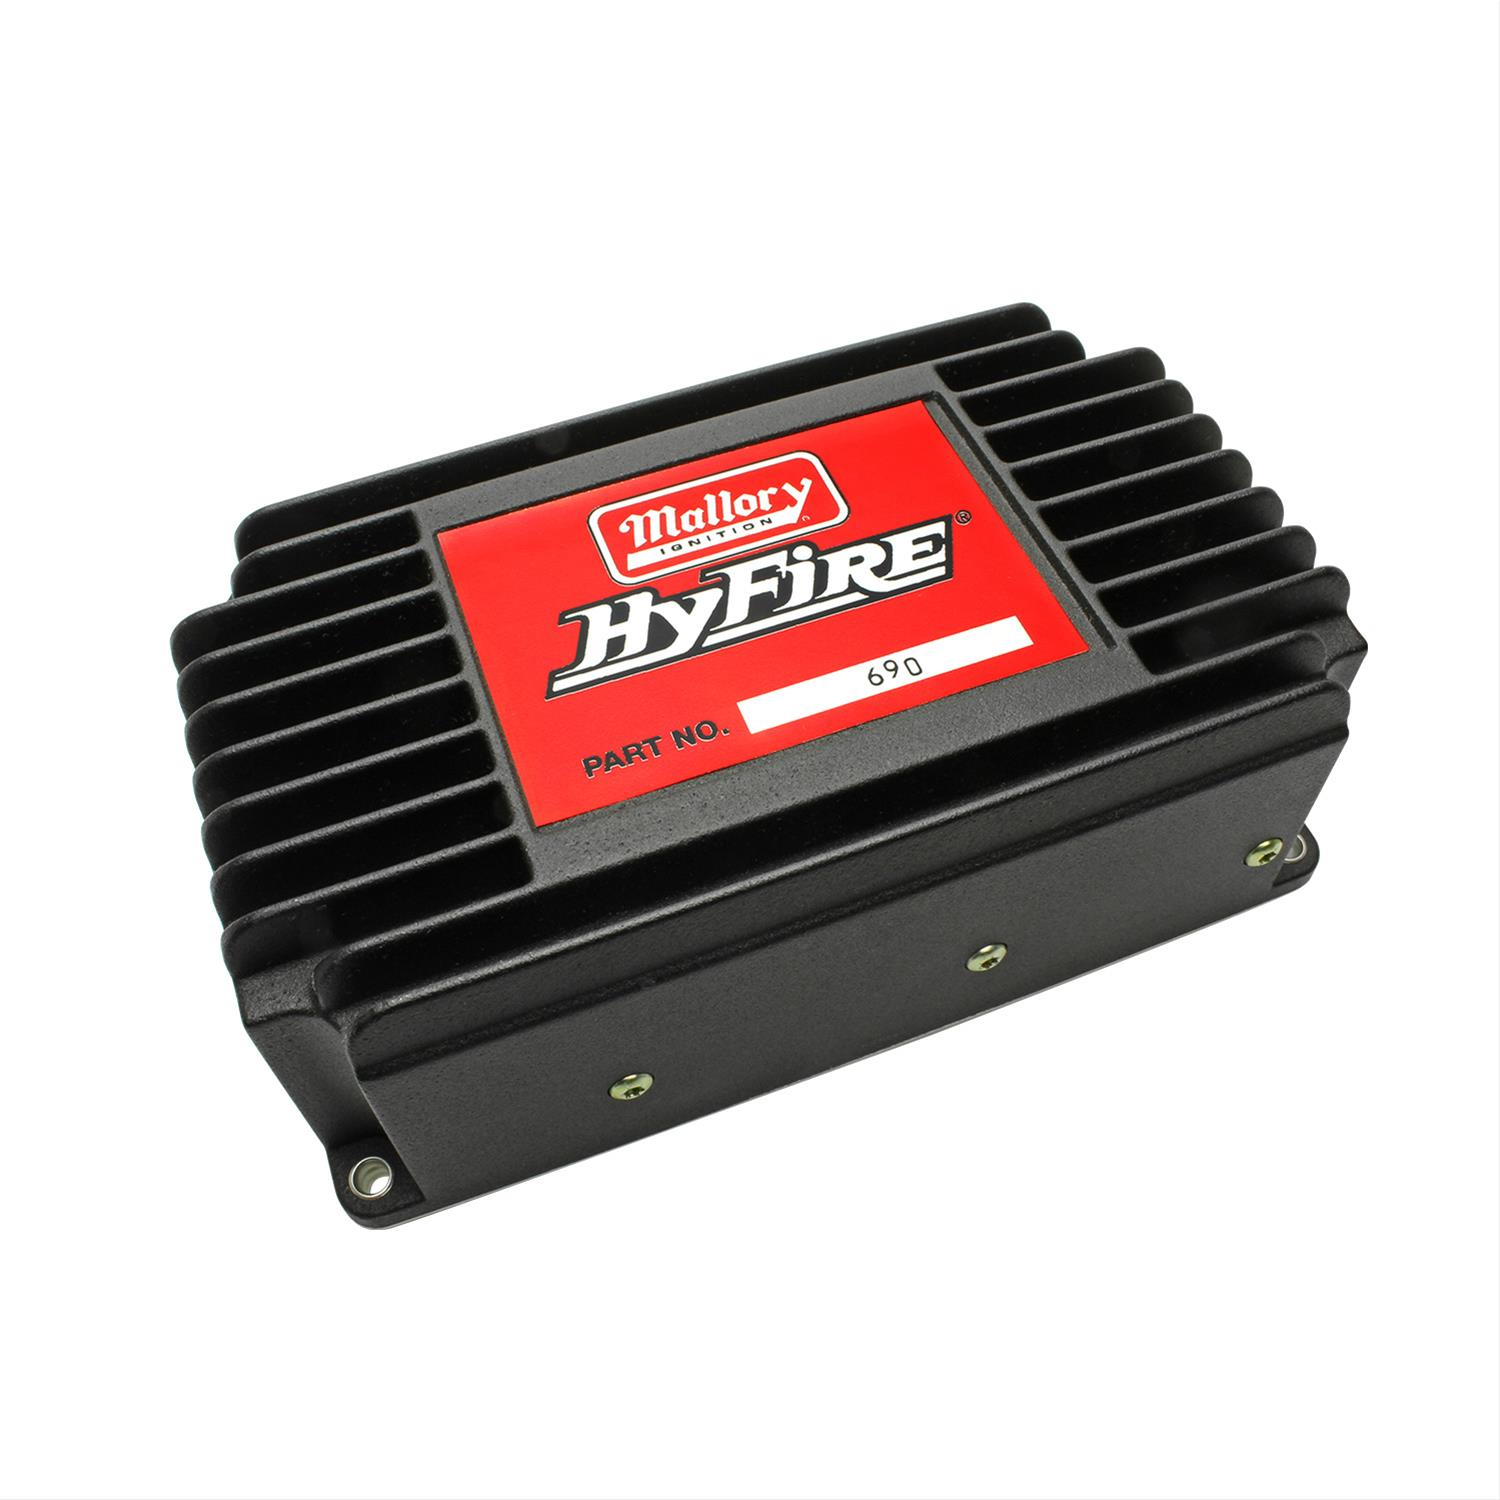 Mallory Hyfire V Ignitions 690 Free Shipping On Orders Over 99 At Ignition Systems Troubleshooting Summit Racing